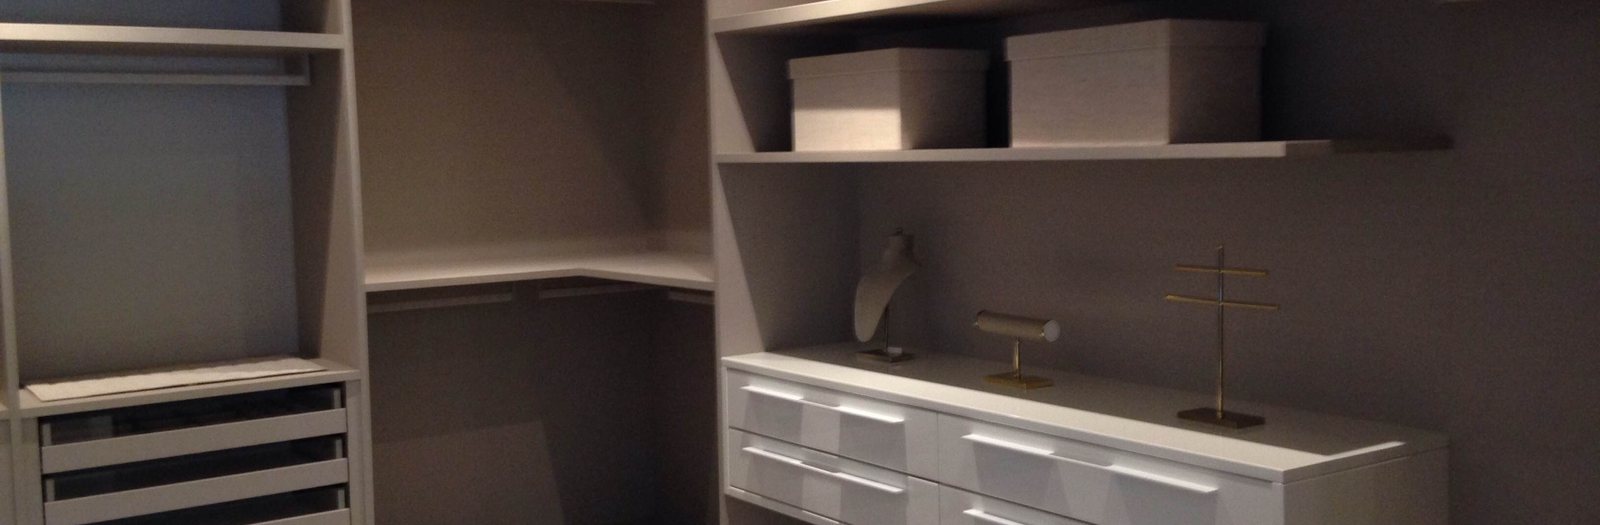 Modern Closet with grey painted walls